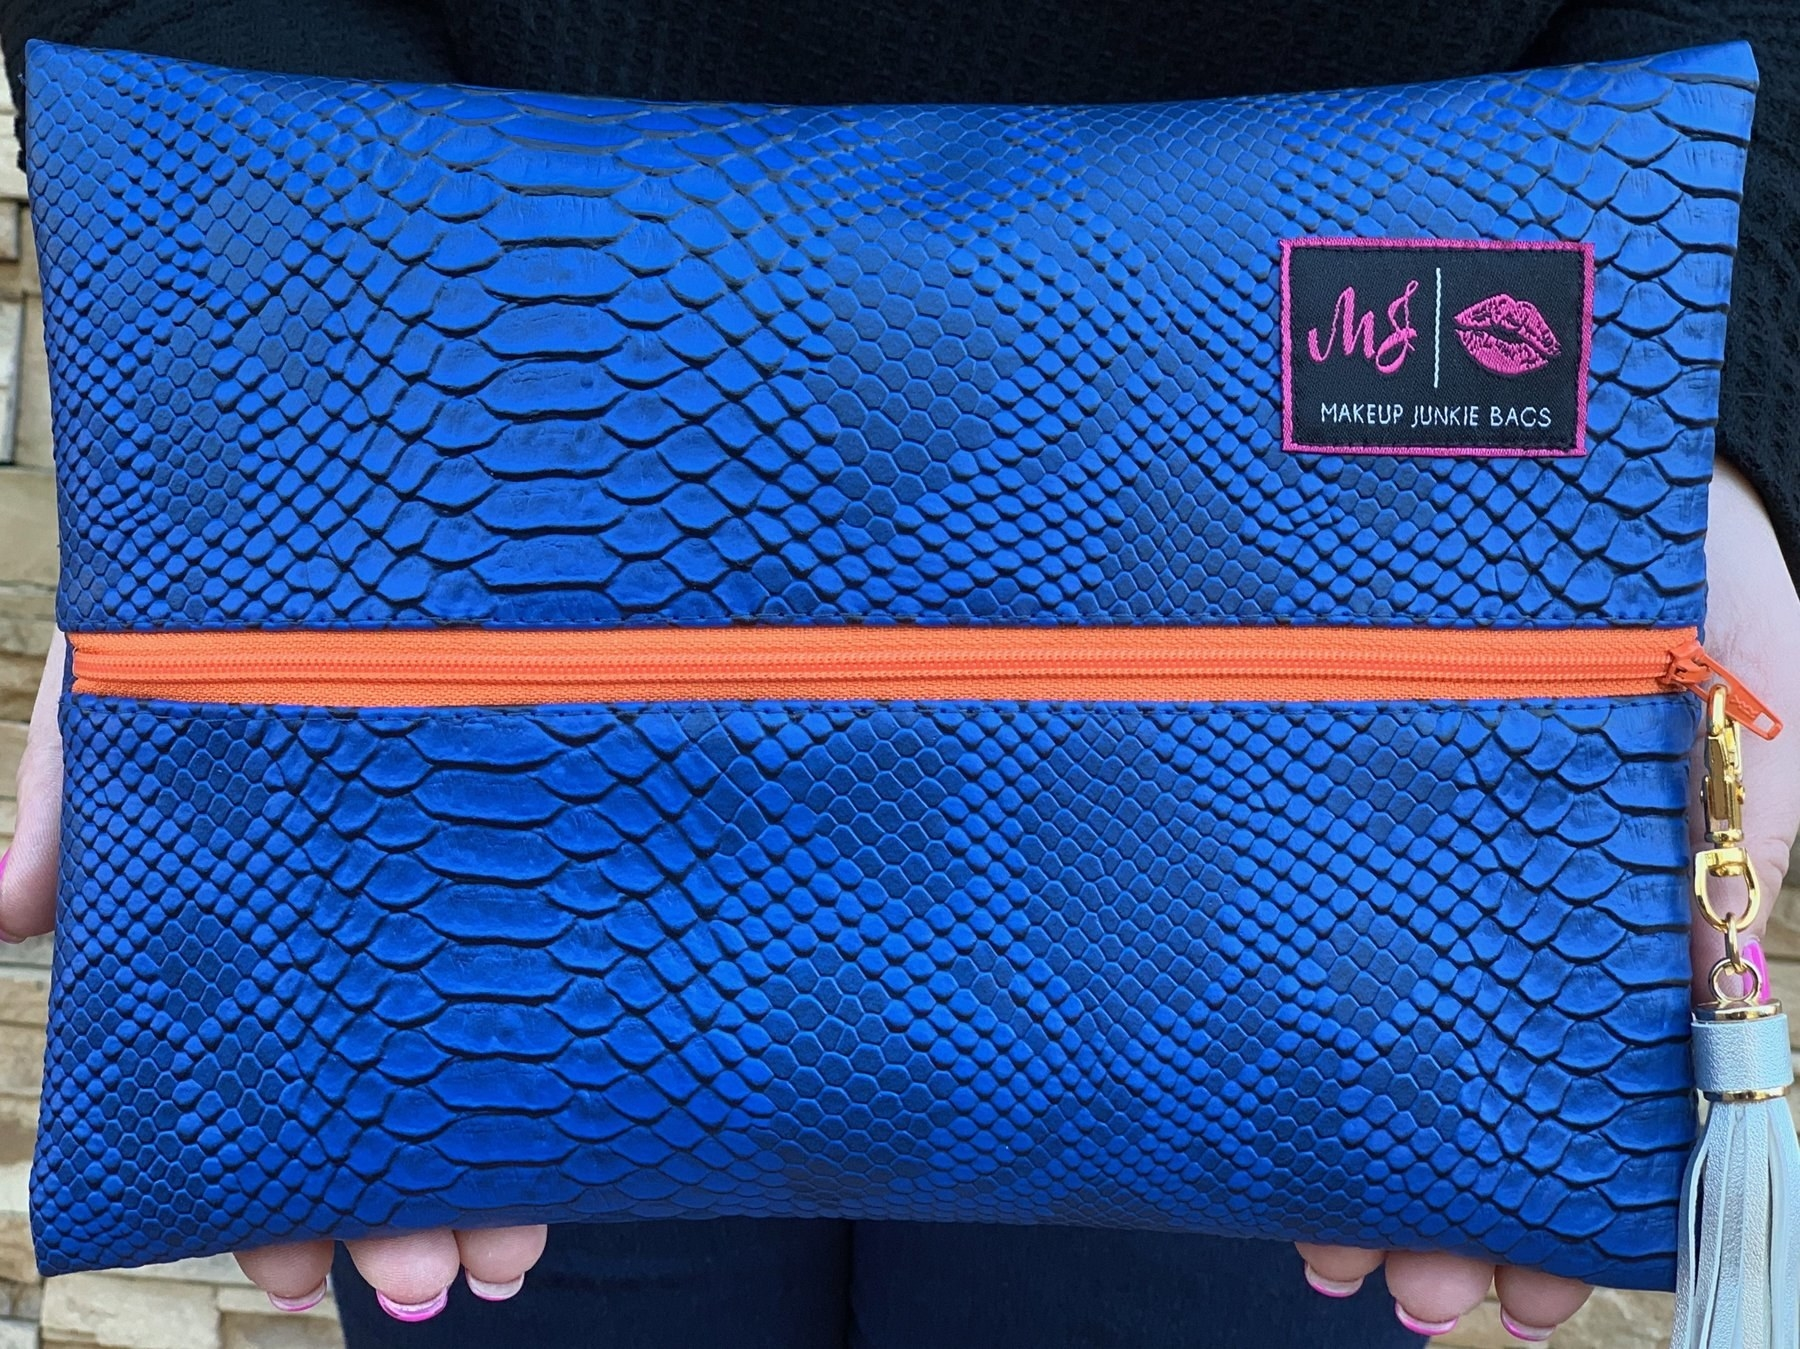 person holding up a Makeup Junkie bag with cobalt blue snakeskin and a bright orange zipper